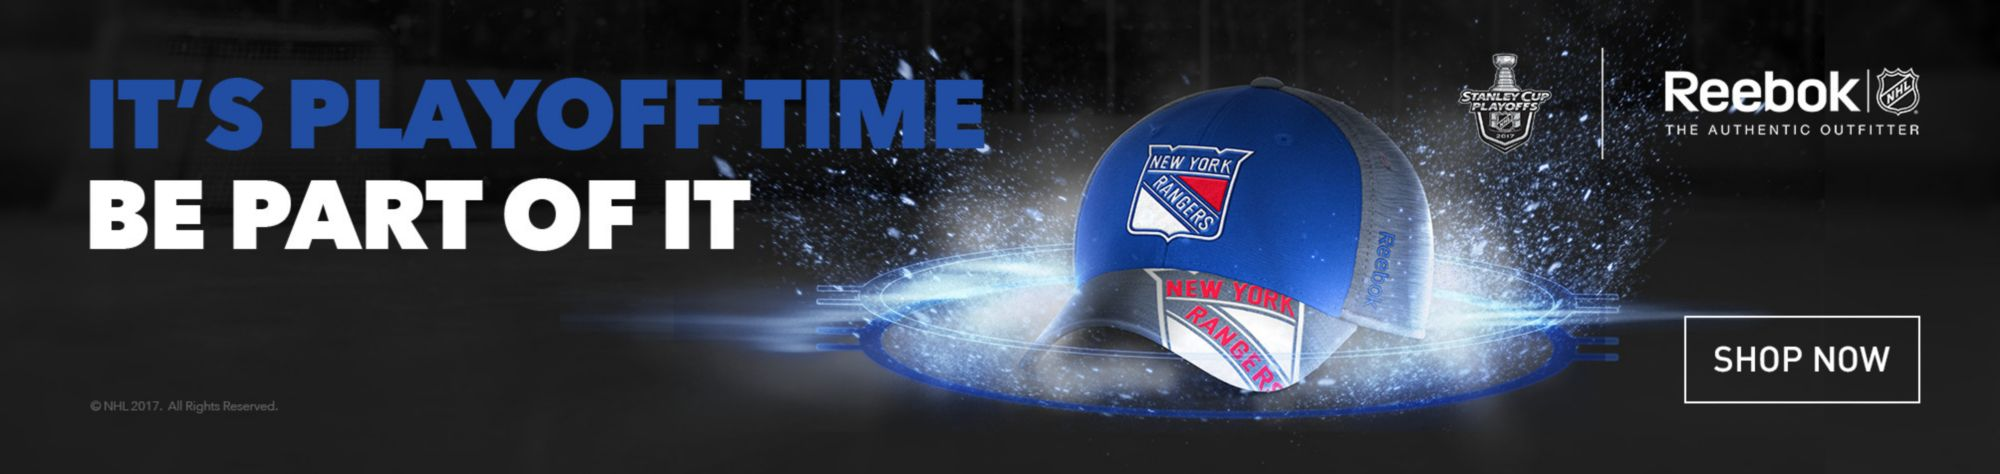 NHL Reebok Playoffs - New York Rangers